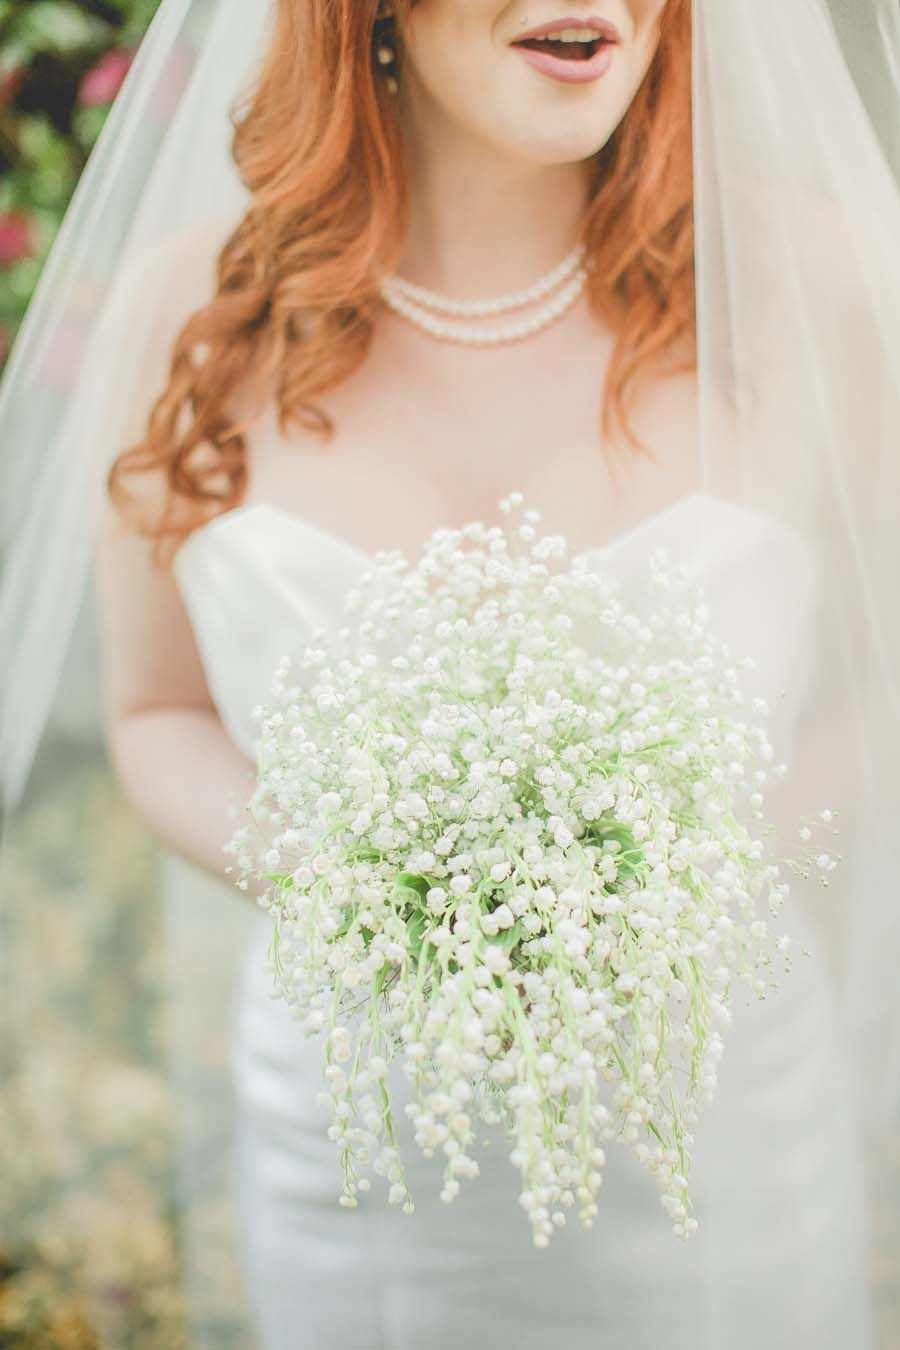 Simple and splendid white bouquet full of baby's breath!